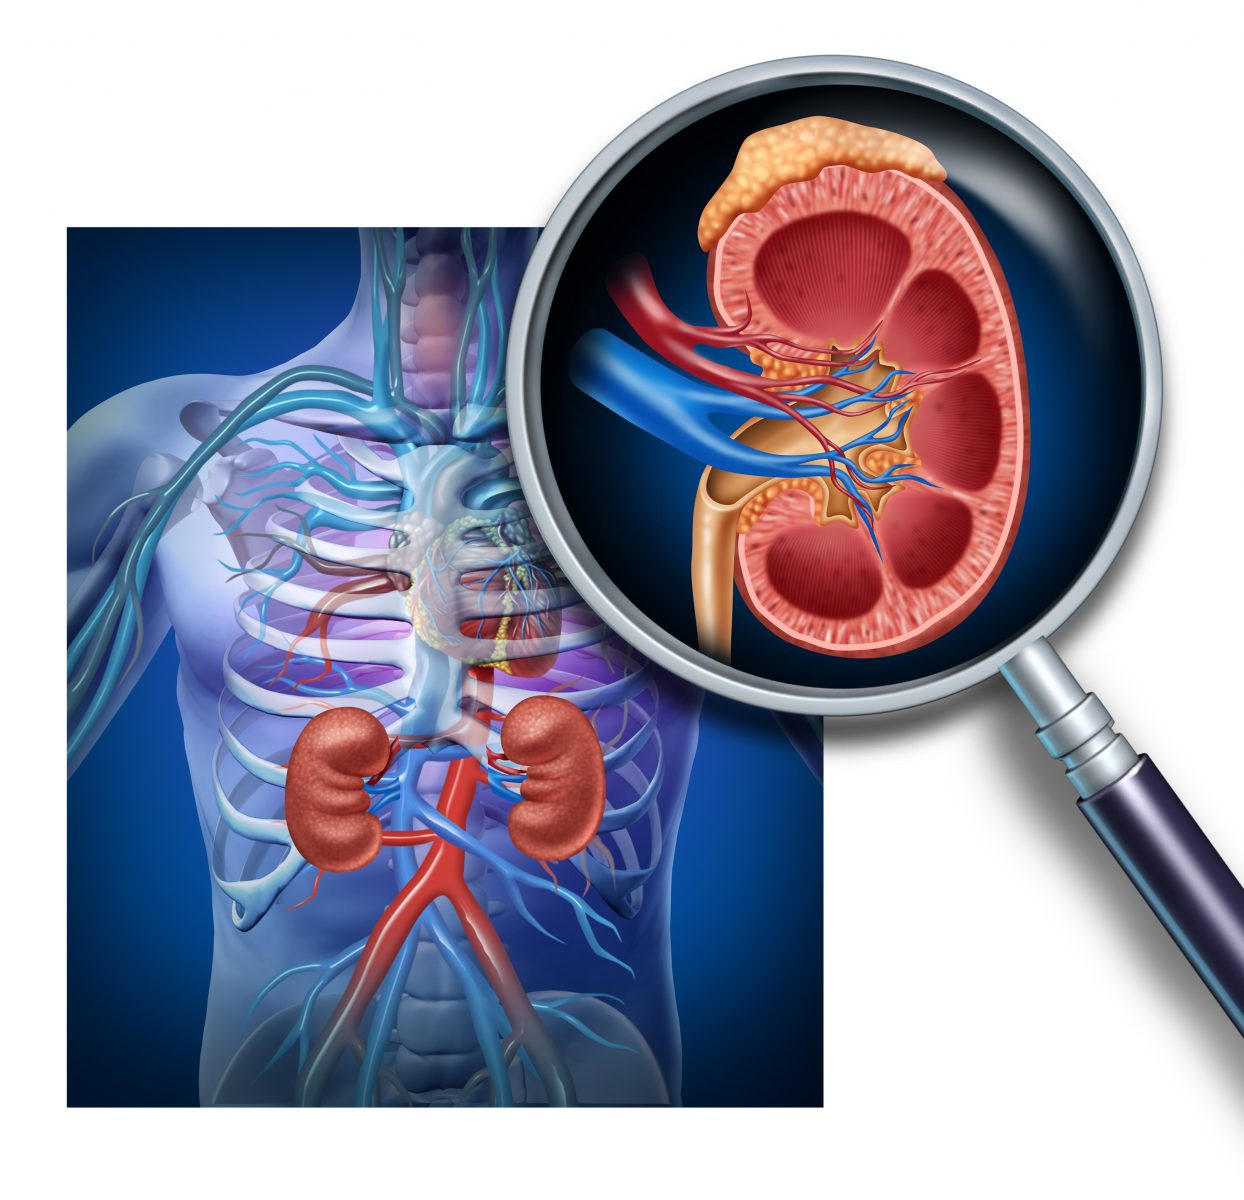 Lupus and the Kidney Disease, Lupus Nephritis: An Expert's View